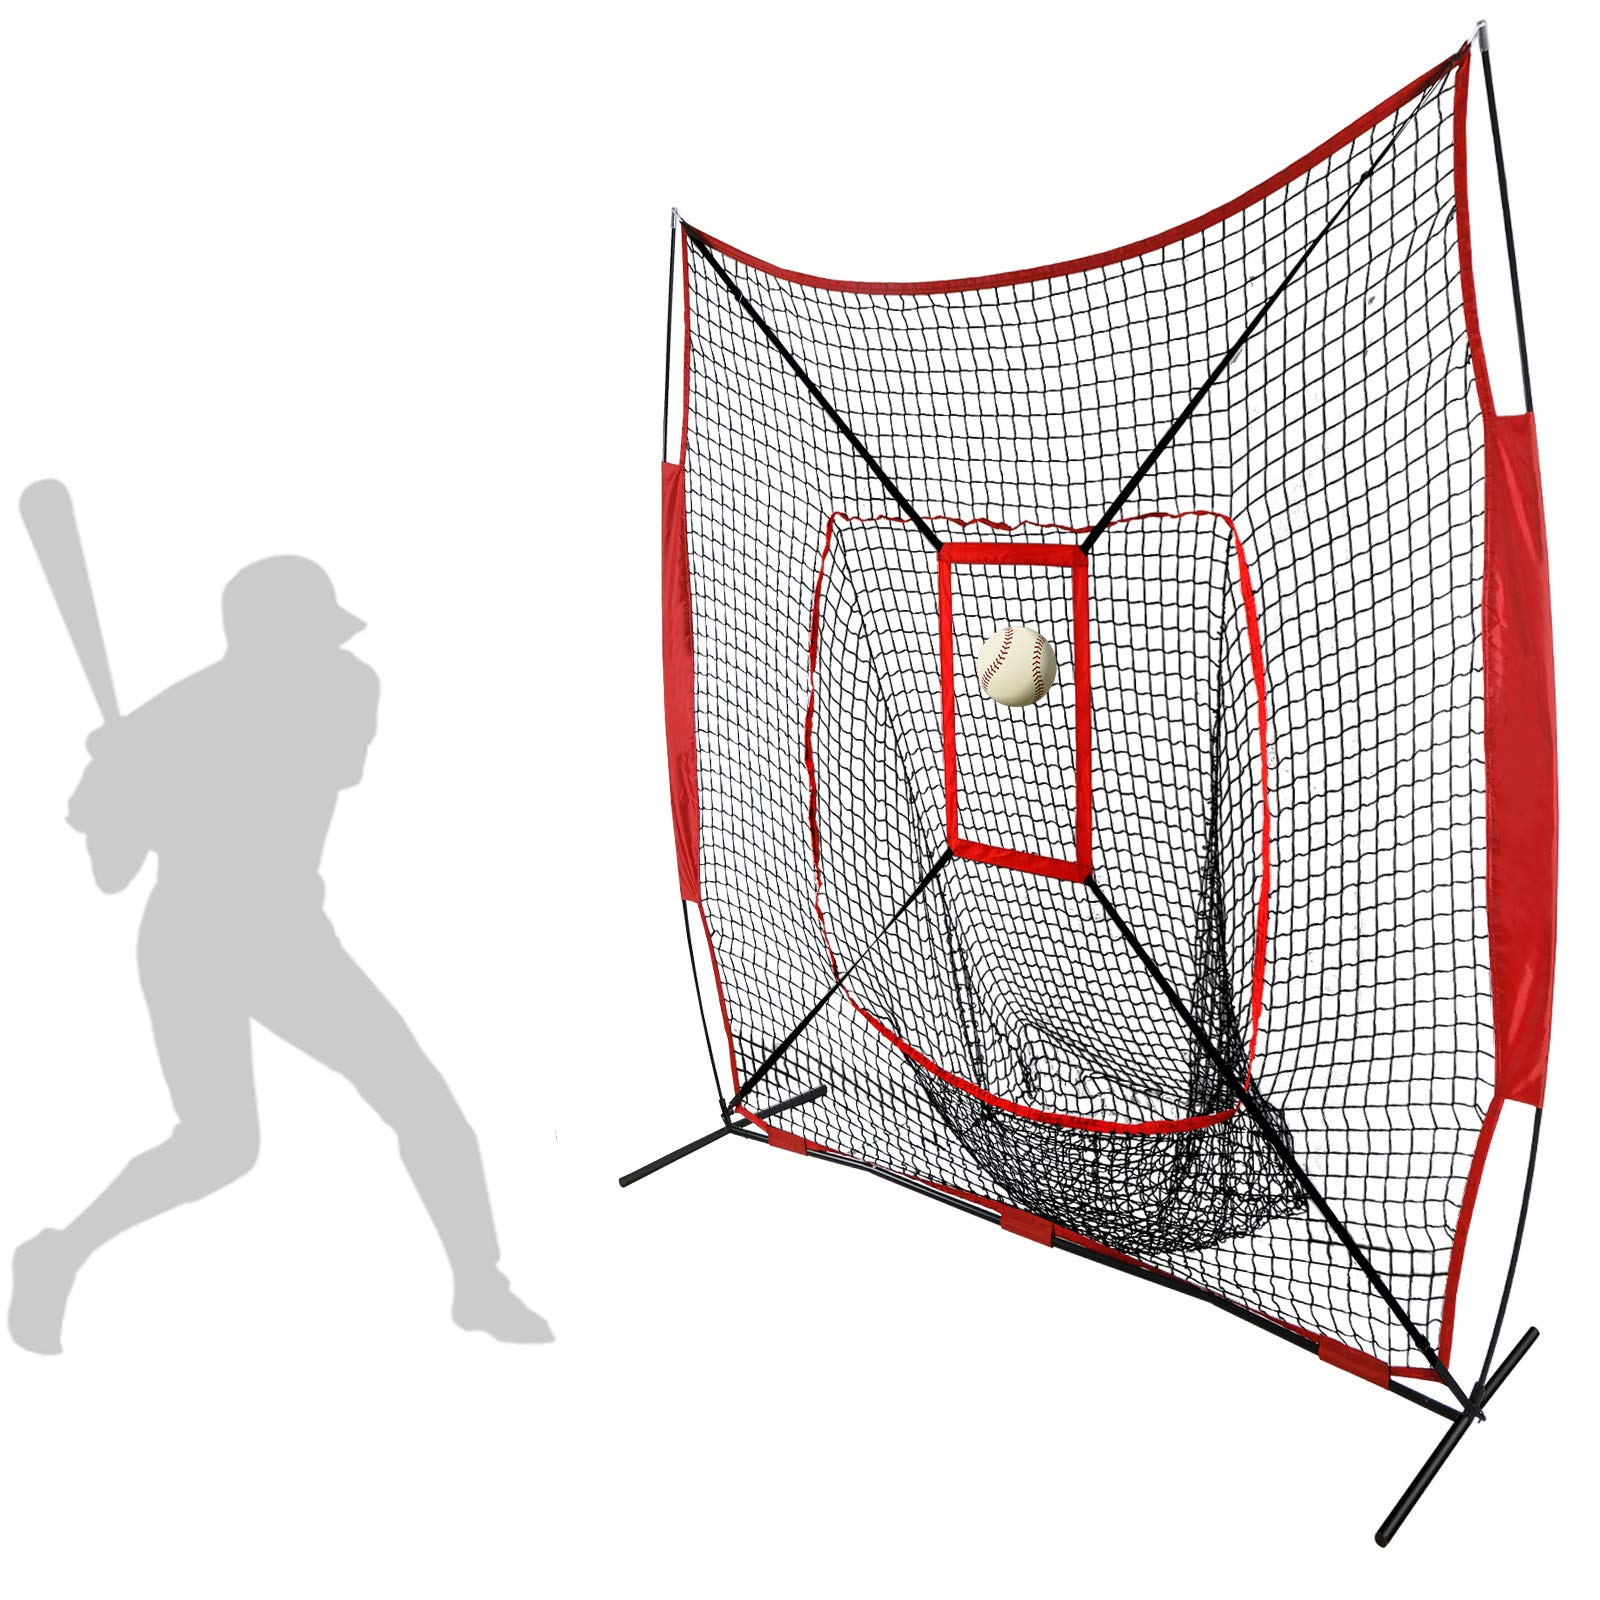 JupiterForce Convenient 7'x 7' Baseball & Softball Practice Training Nets with Target Frame by JupiterForce